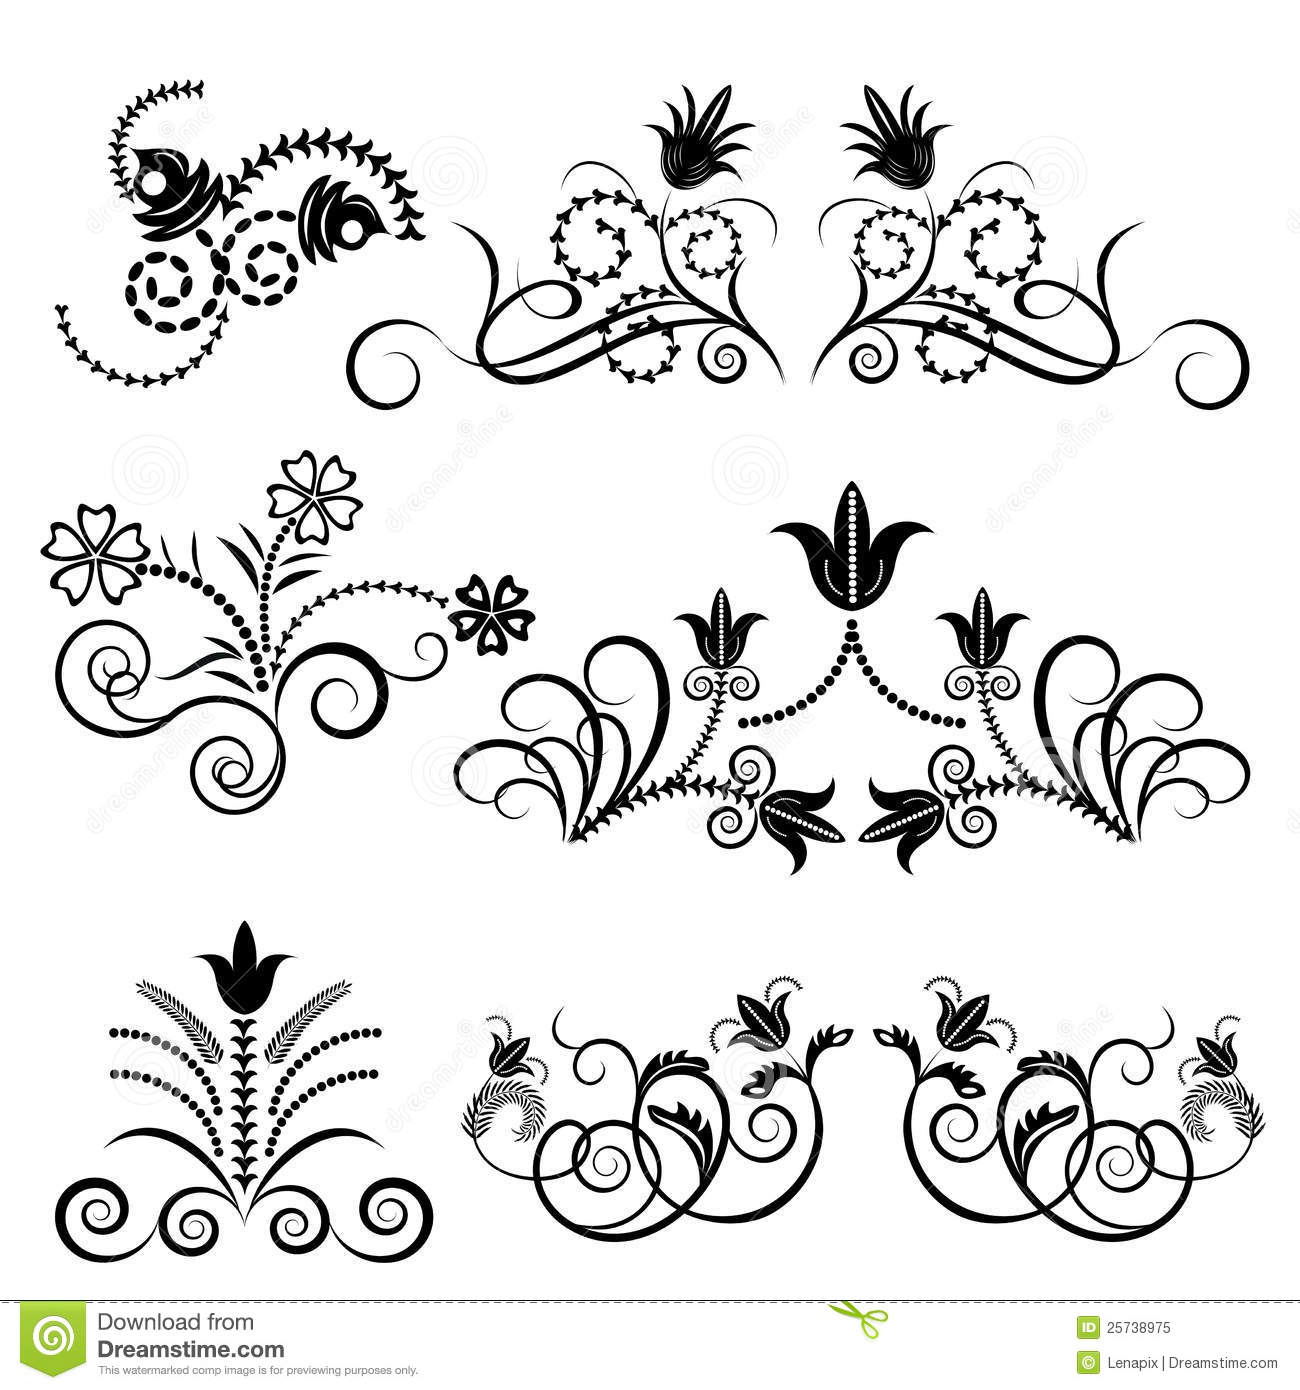 Black And White Floral Design Stock Vector Illustration Of Leaf